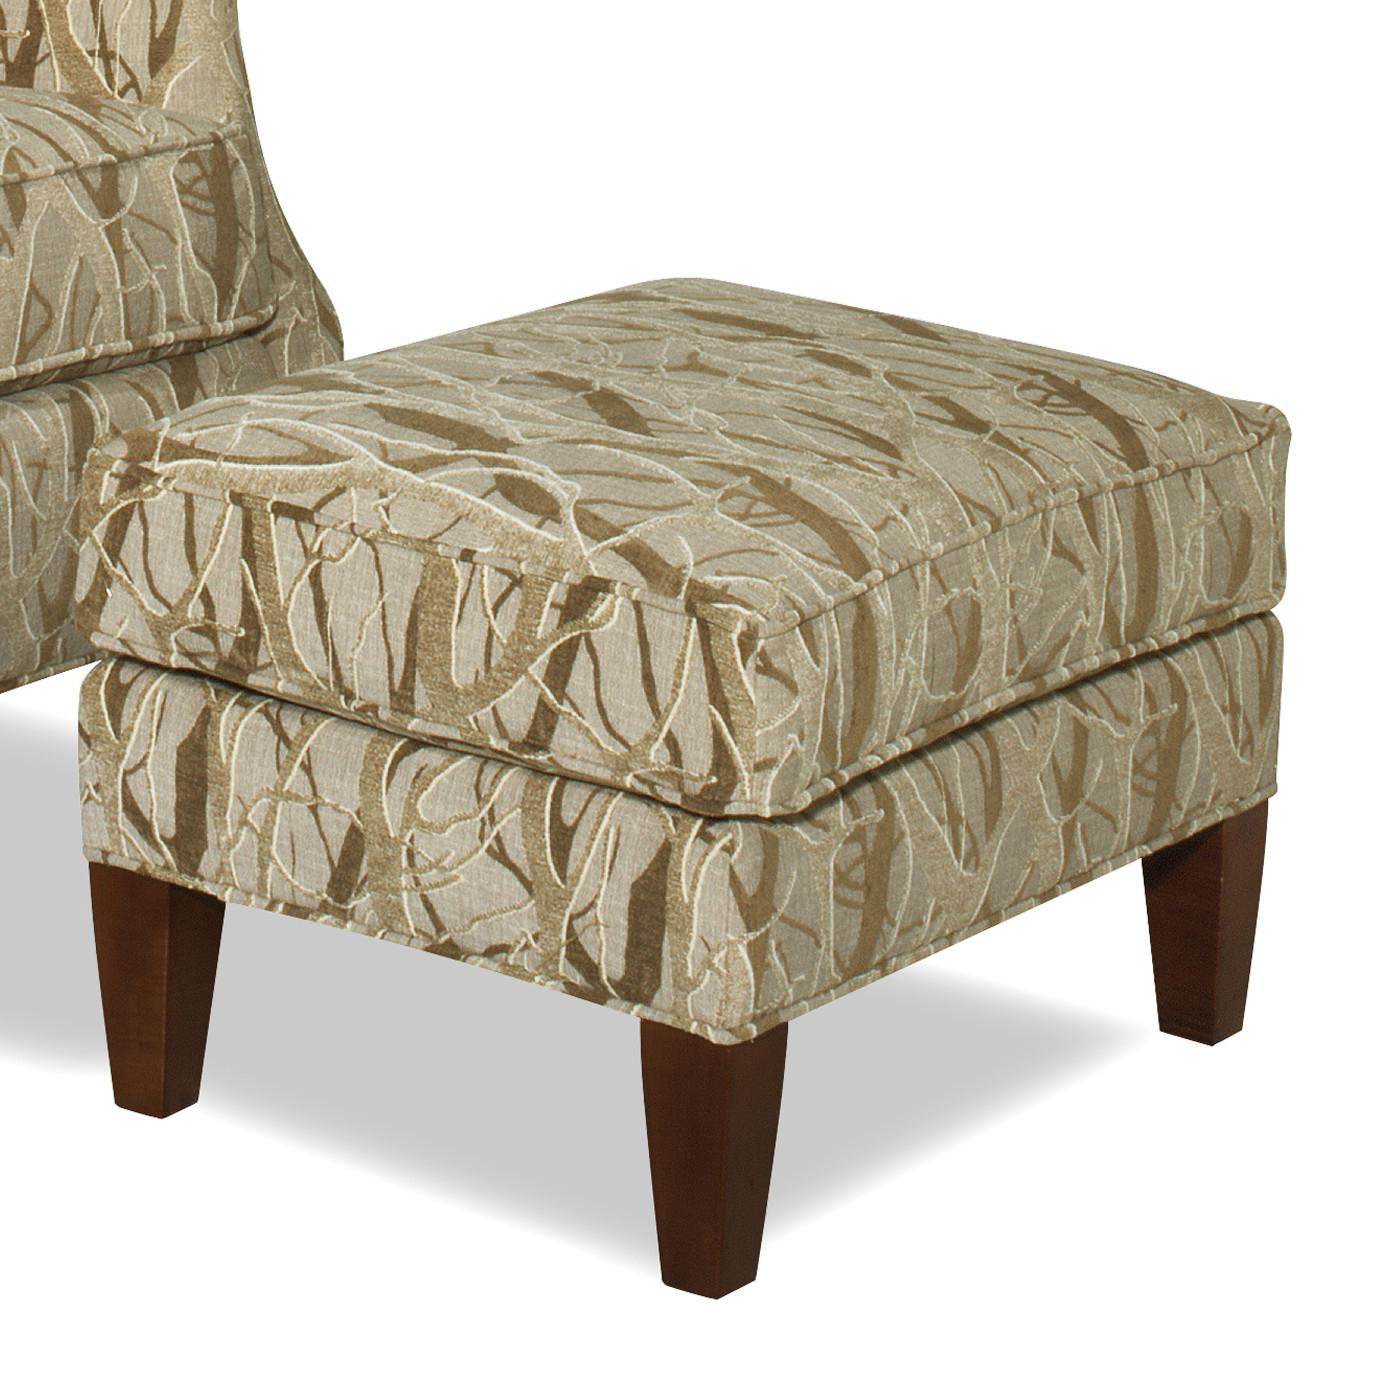 Chairs With Ottoman Accent Chairs Contemporary Ottoman With Tall Tapered Legs By Hickorycraft At Johnny Janosik